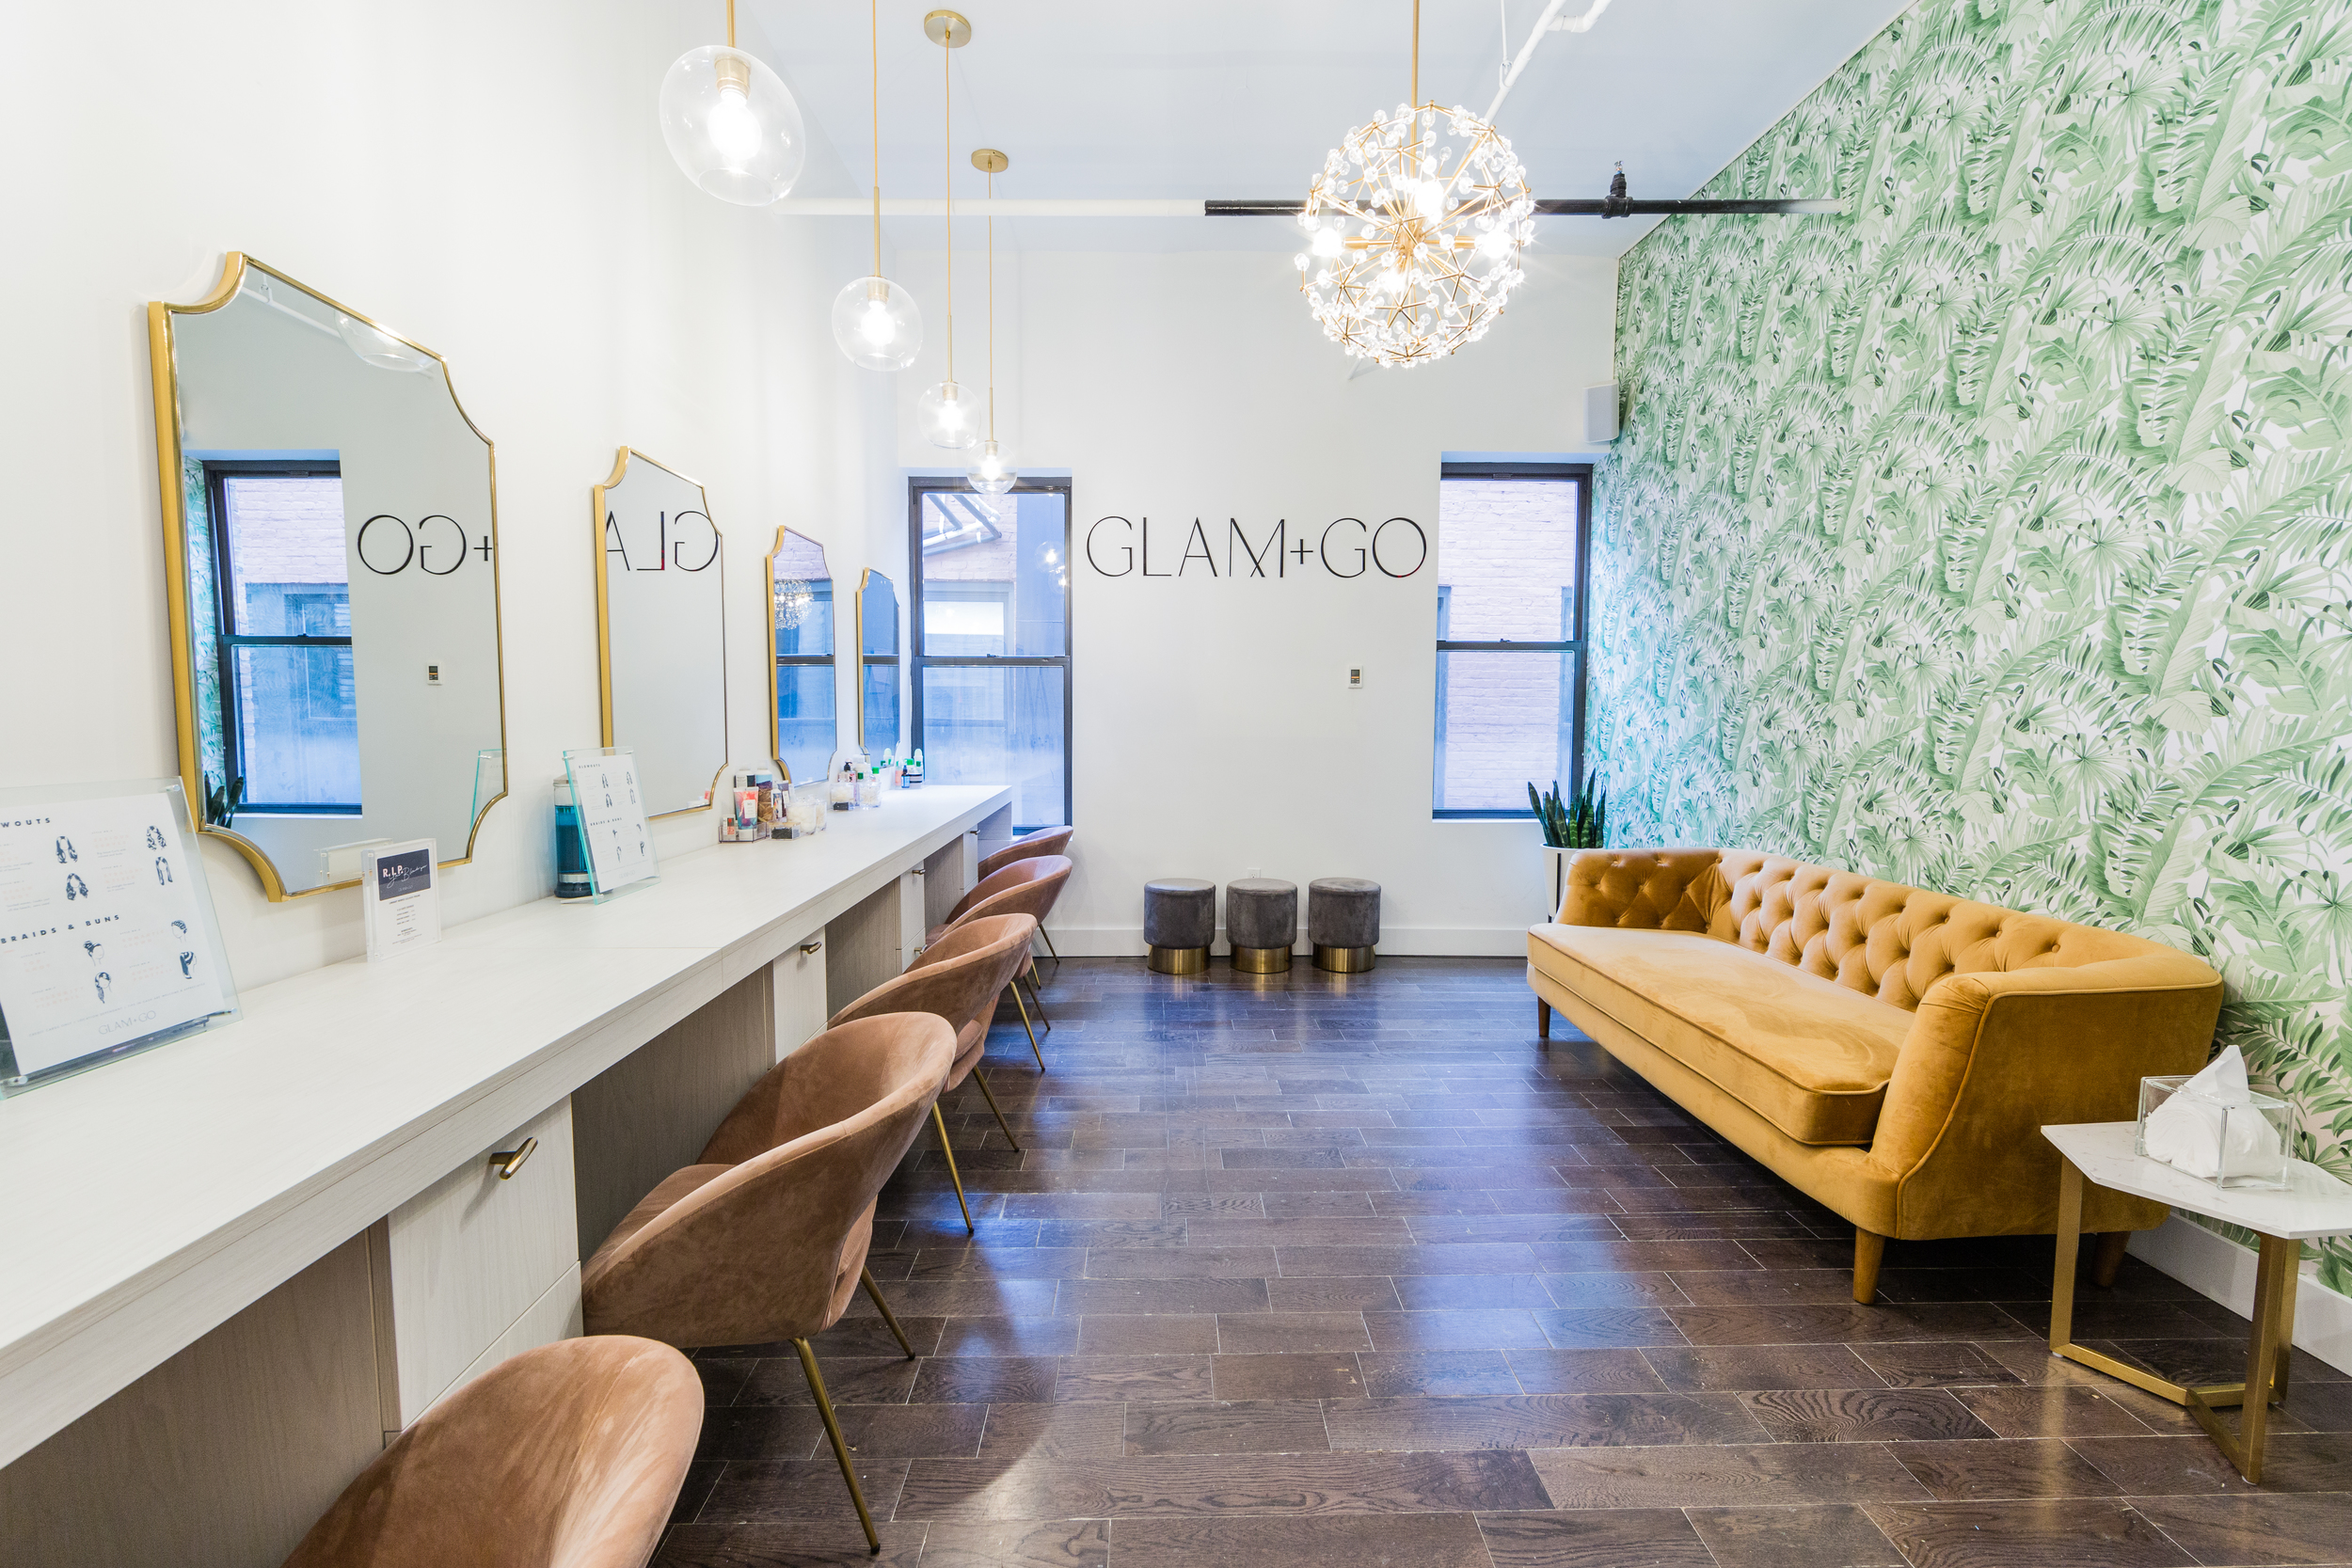 Luminary_interiors_openletr_interview_Cate_Luzio_Hair_Glam+Go .jpg